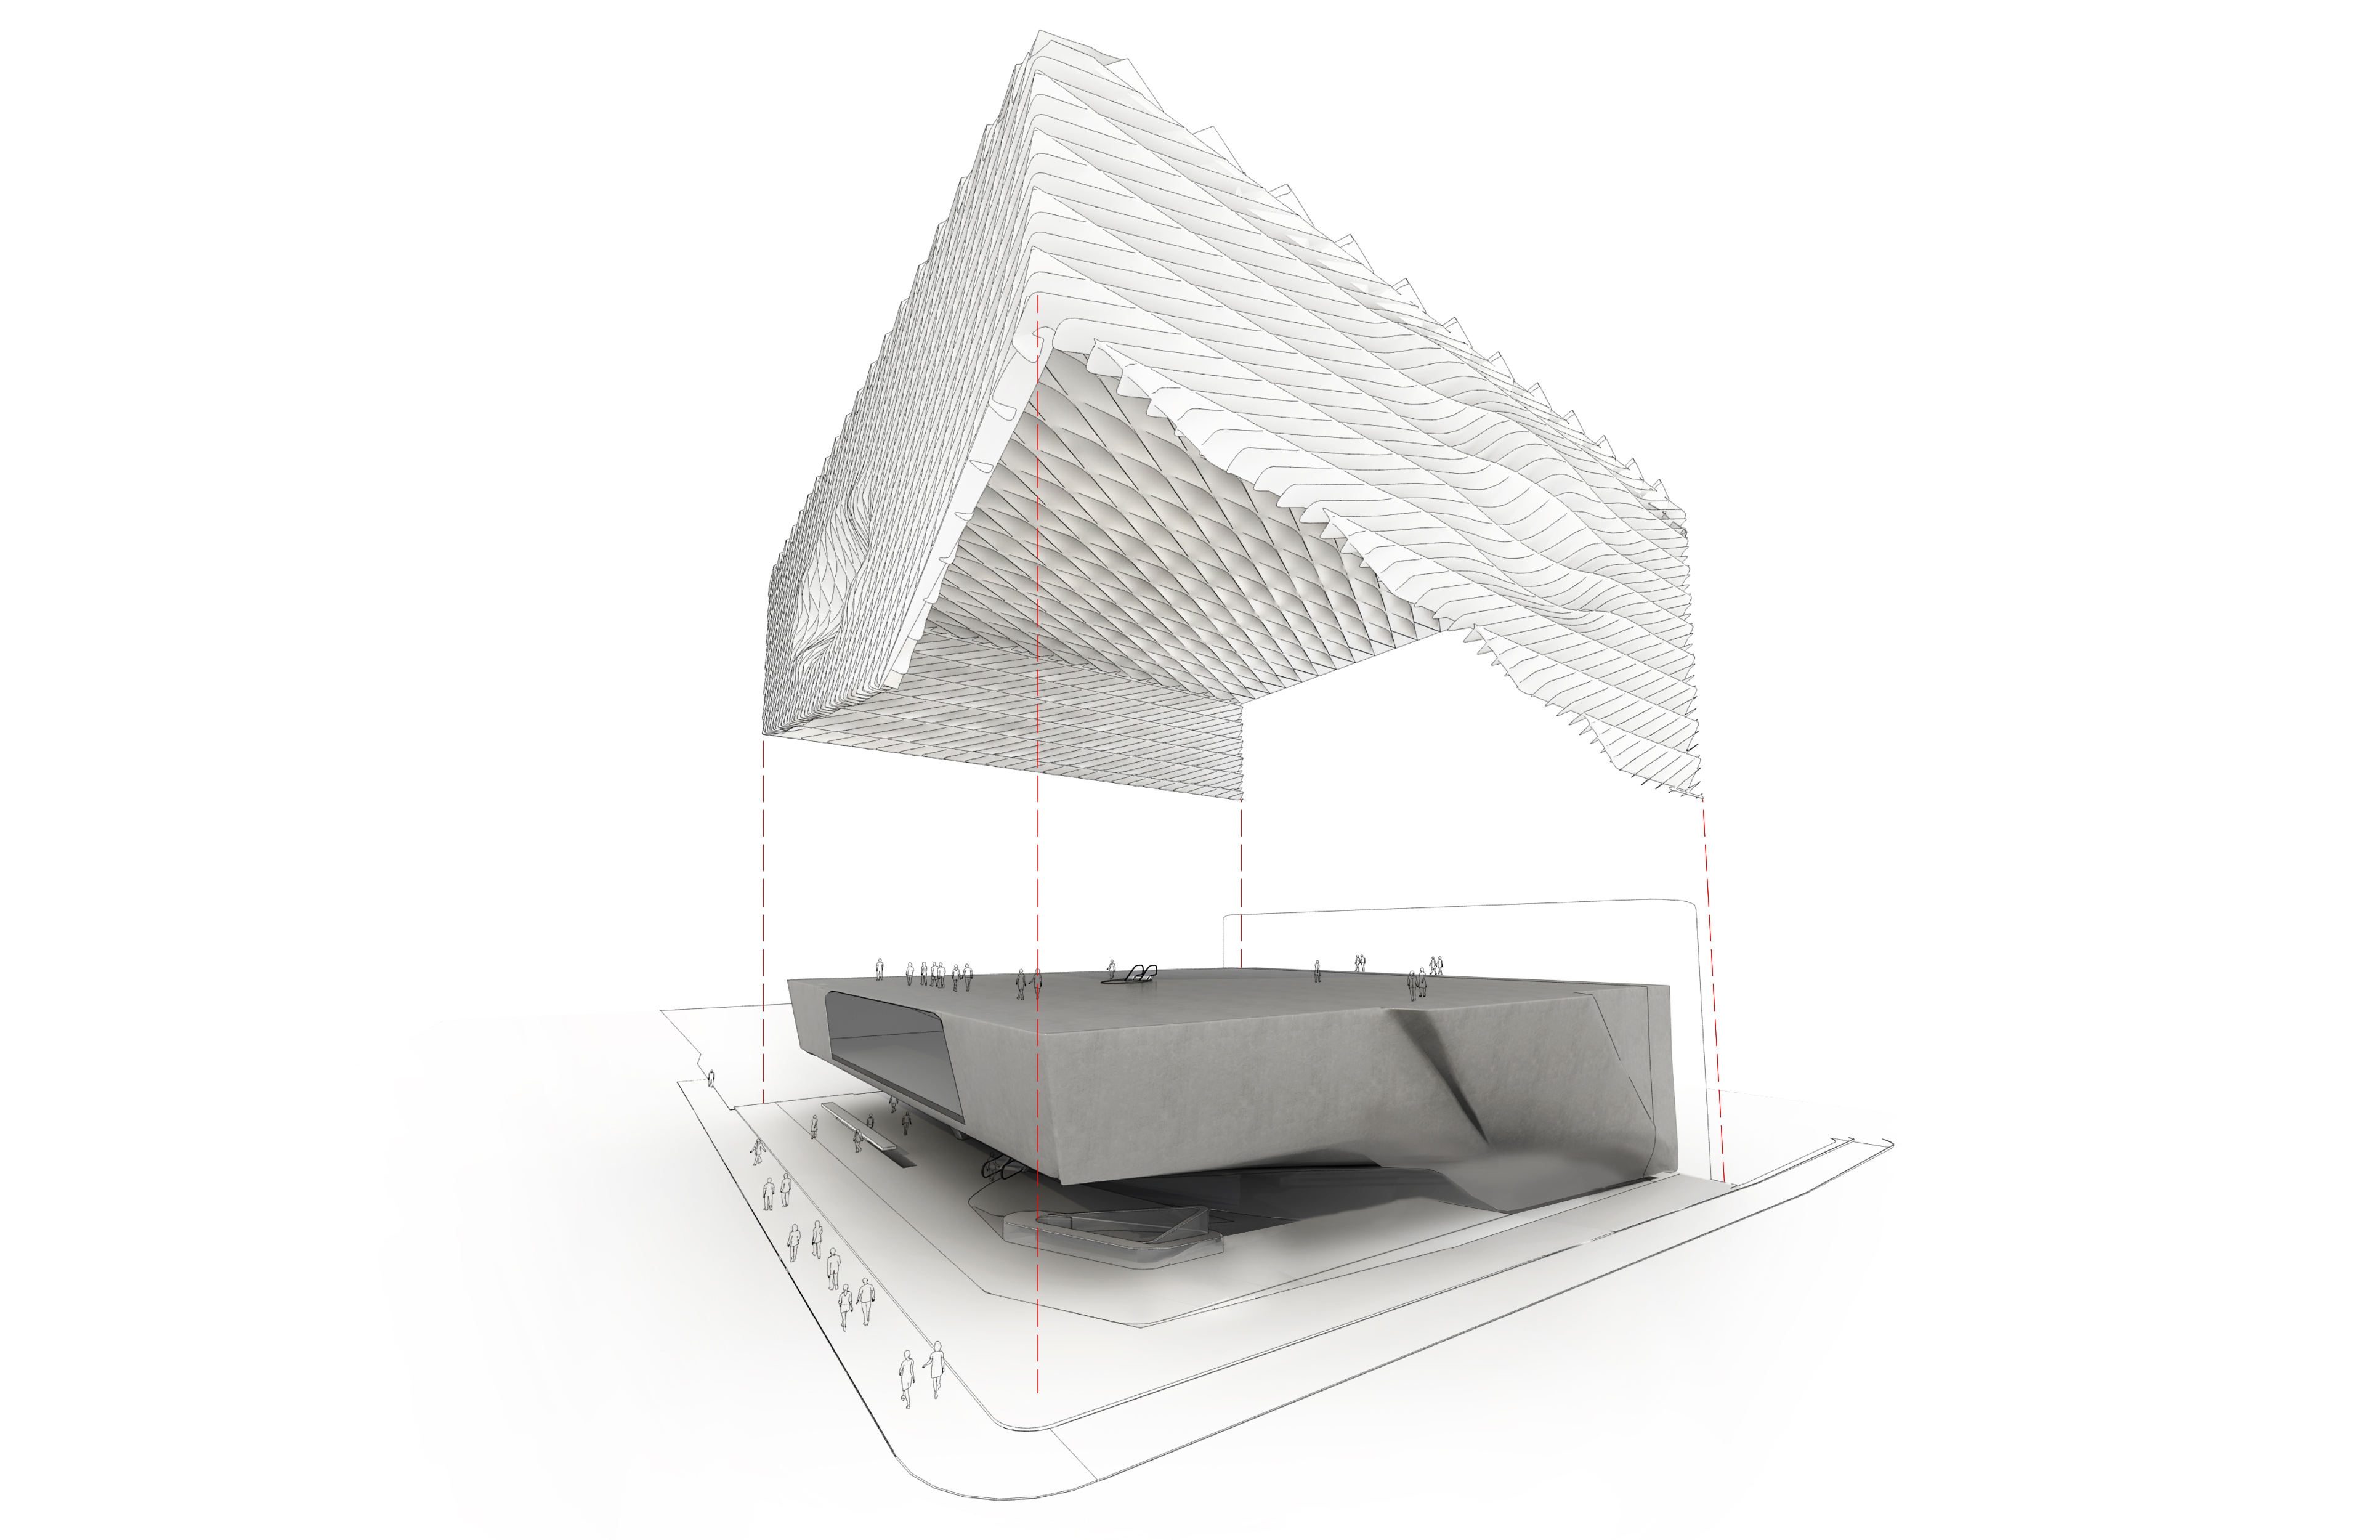 The Broad Collection: Exploded Axonometric. Diller Scofidio+Renf